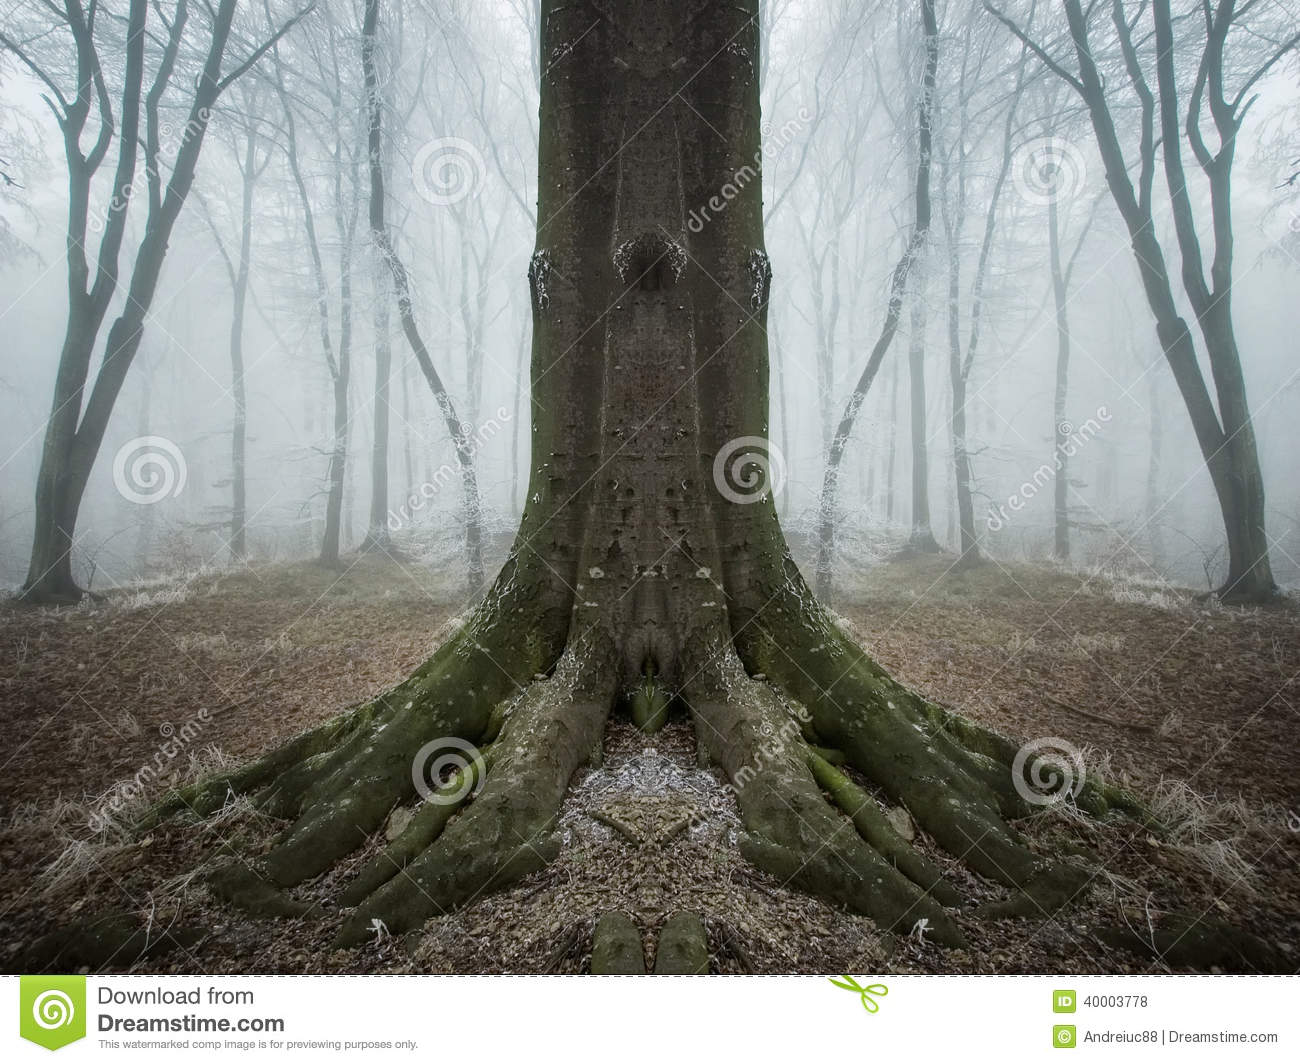 Ec Ee C Z further Surreal Symmetrical Tree Forest Fog Frost Late Autumn also Owl Fantasy Beautiful Wood Forest Tale Fairy Magic together with Amazing Fall Forrest Lovely Nature Picture European Forest Autumn Bavaria Germany Spooky Creepy Atmosphere besides Istock Medium Resized X. on dark spooky forest